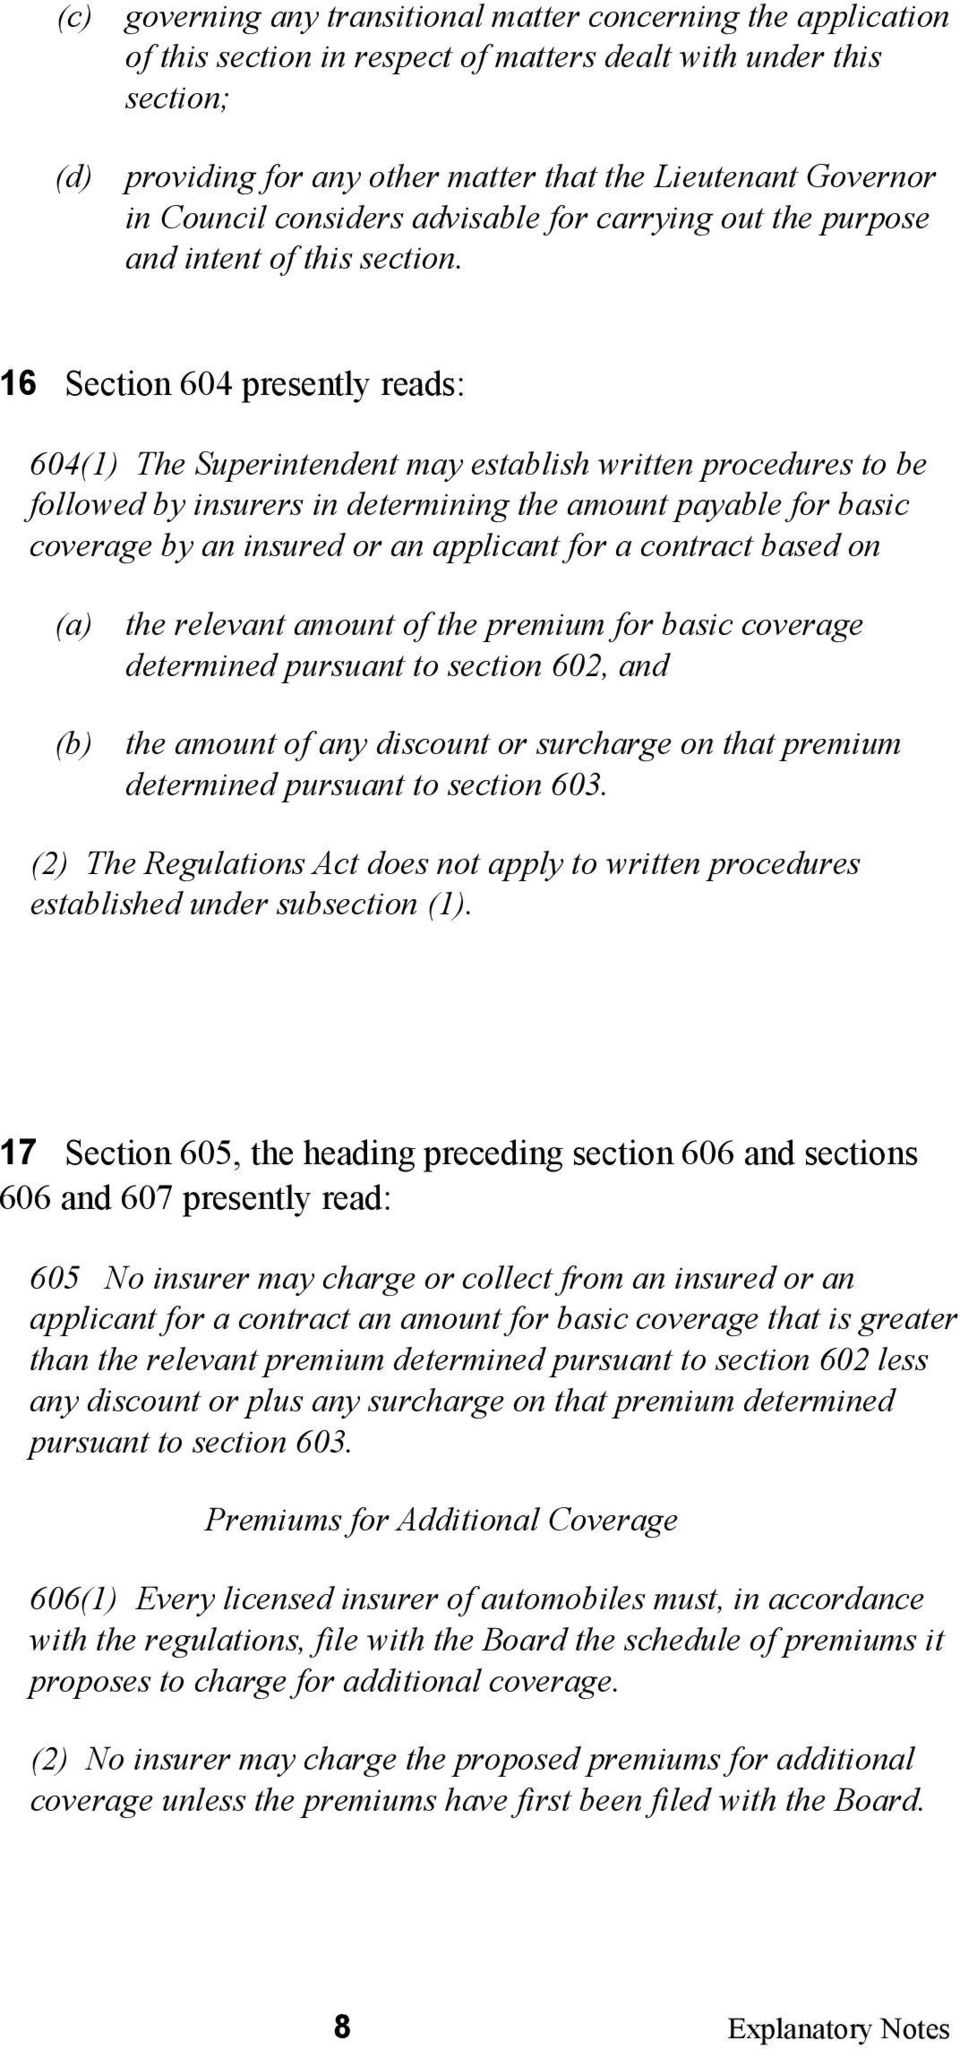 16 Section 604 presently reads: 604(1) The Superintendent may establish written procedures to be followed by insurers in determining the amount payable for basic coverage by an insured or an